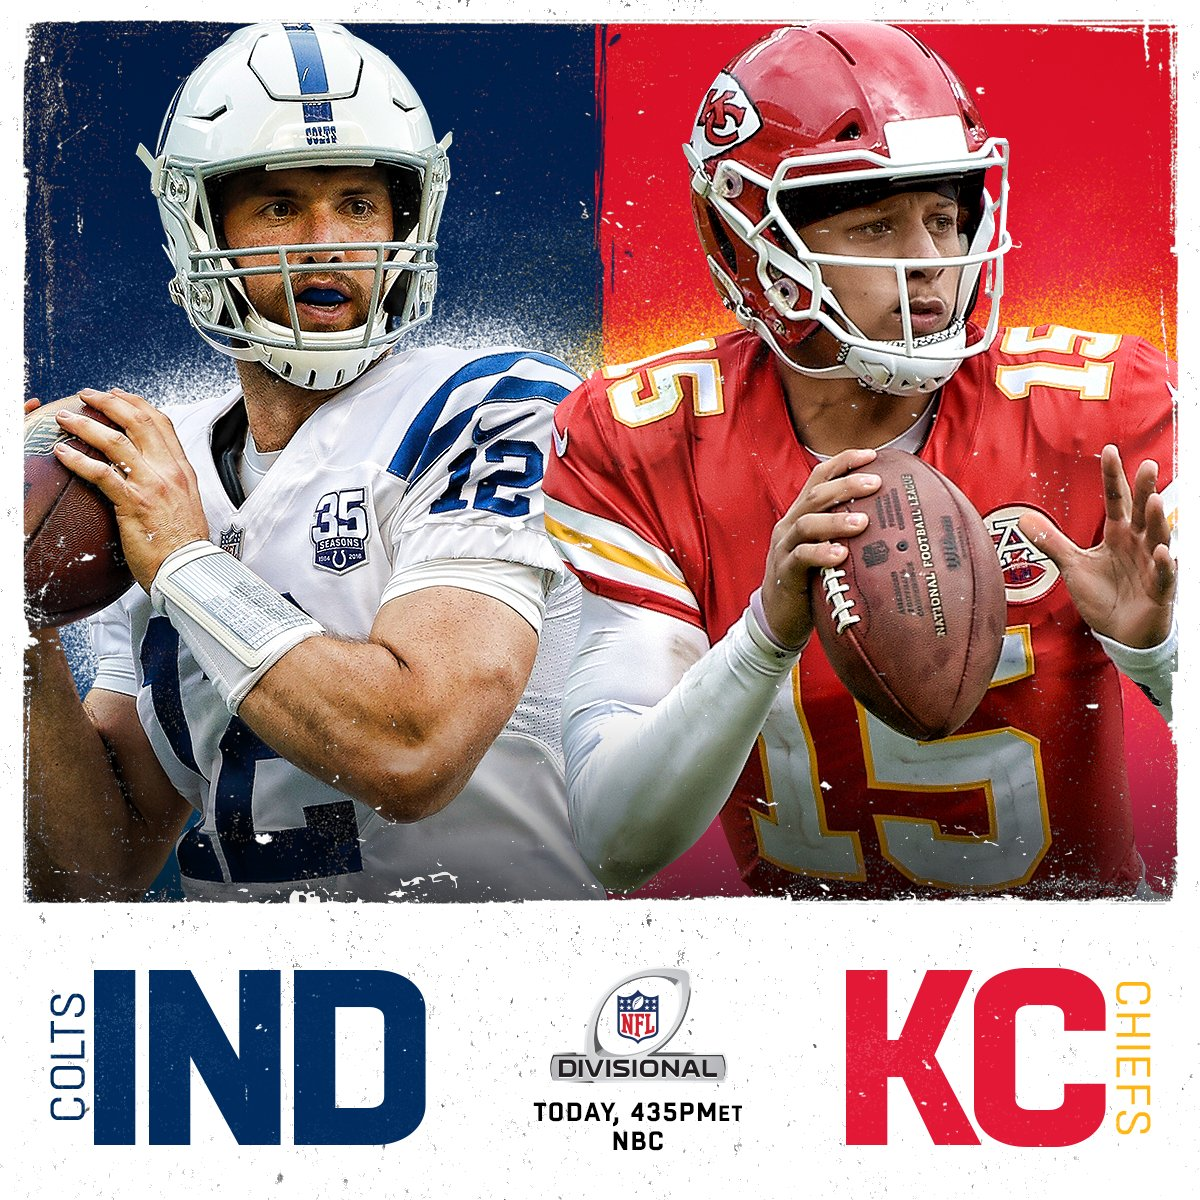 Kicking off the Divisional Round with @Colts vs. @Chiefs! #ColtsForged #LetsRoll  ��: #INDvsKC | 4:35pm ET on NBC https://t.co/dyCLXd6tJp